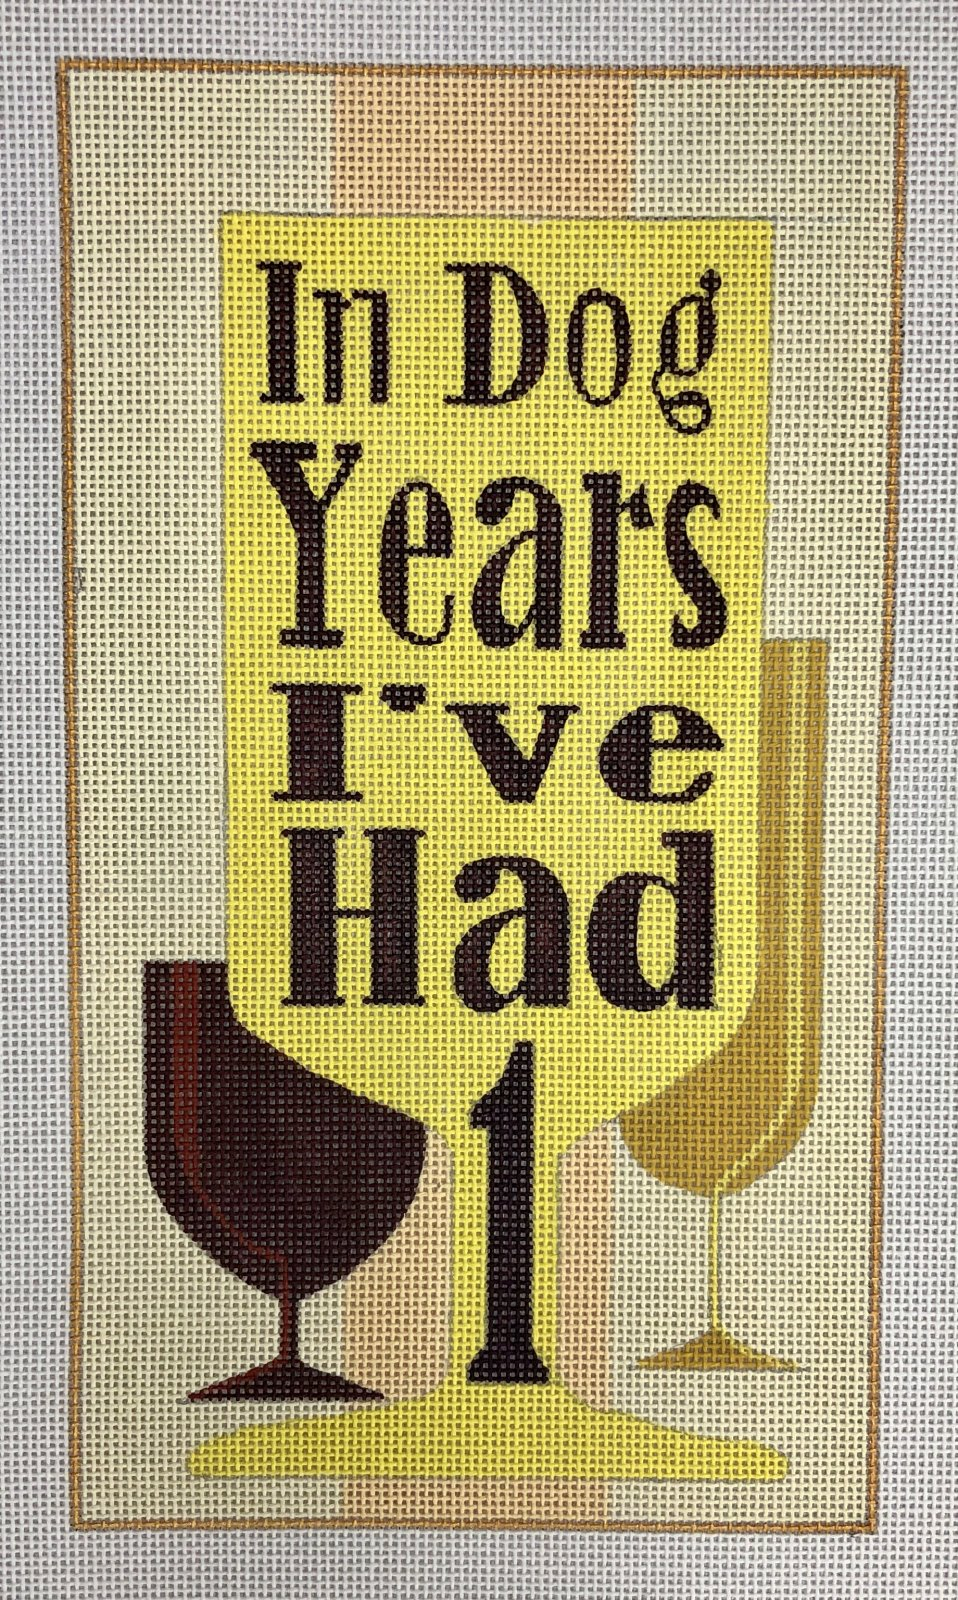 in dog years I've had 1